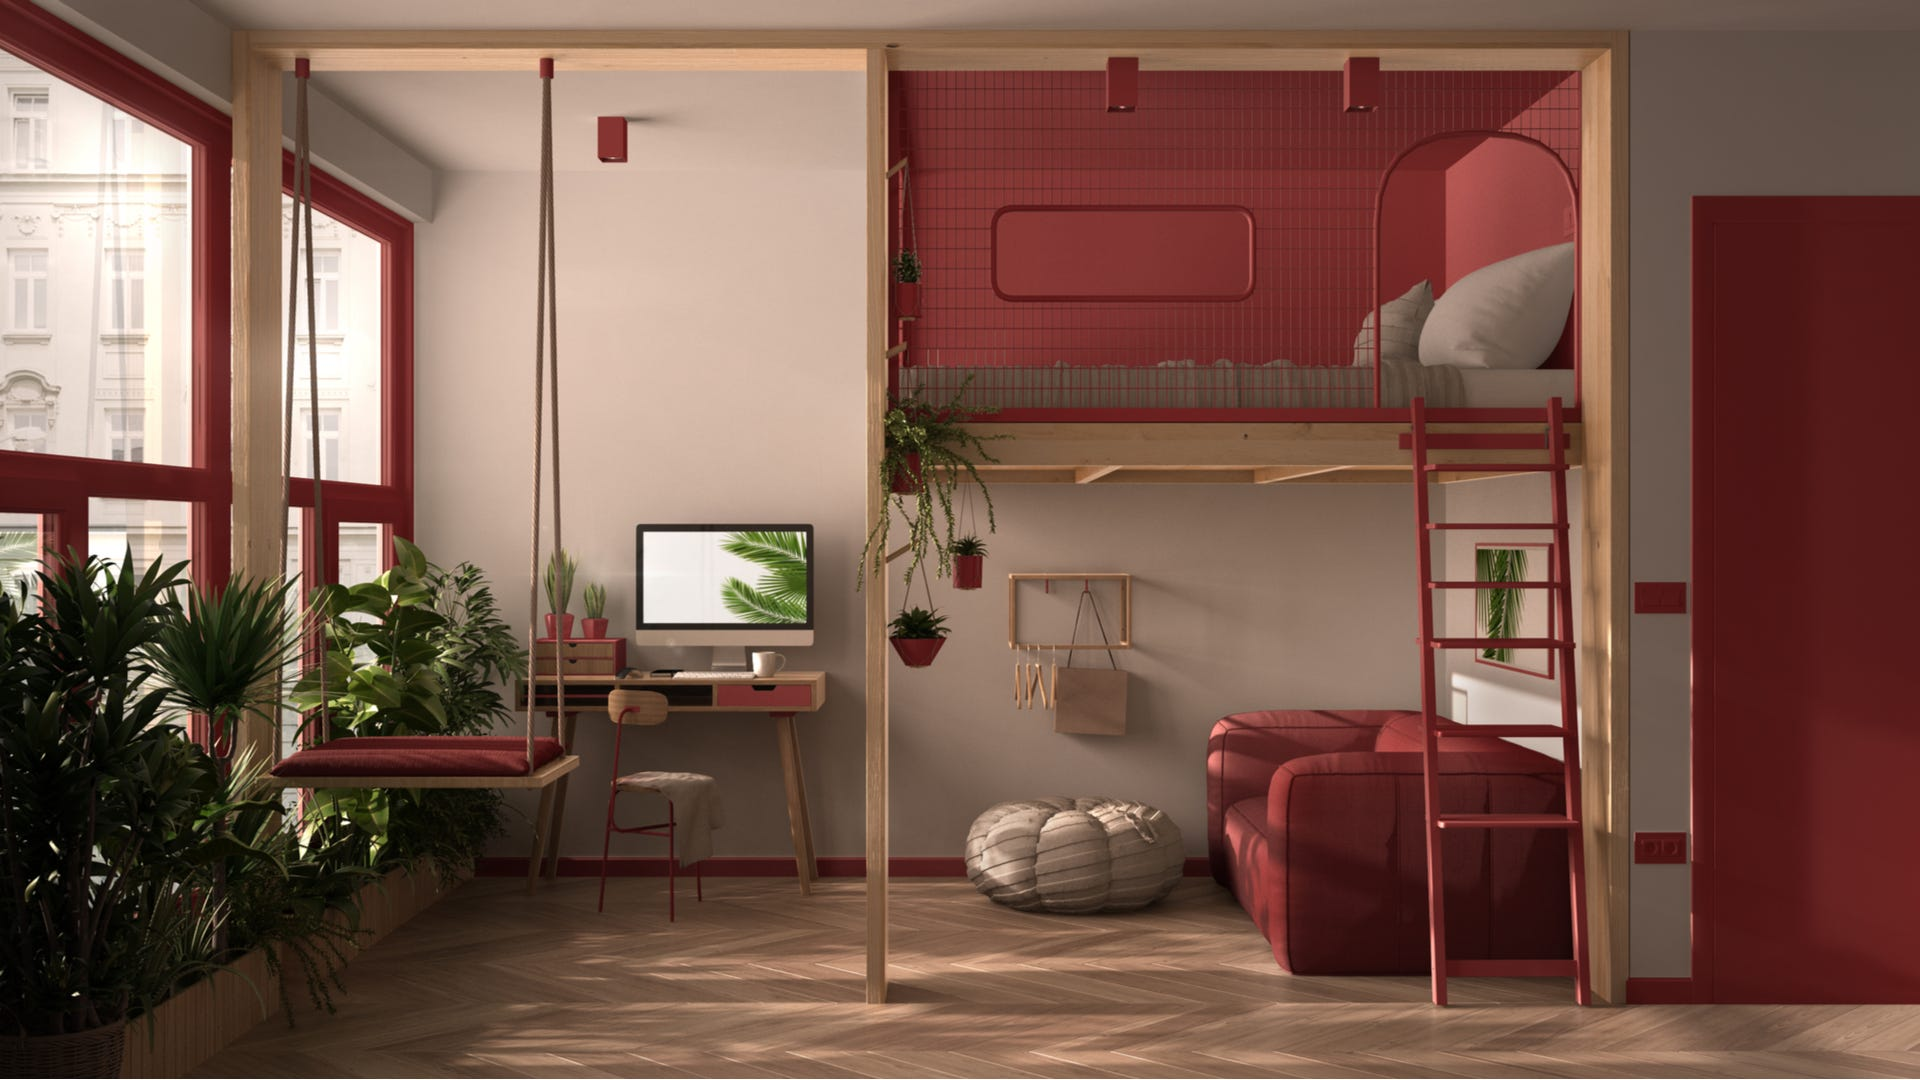 A modern and boho room with red accents. that has a loft bed above a couch and office space.